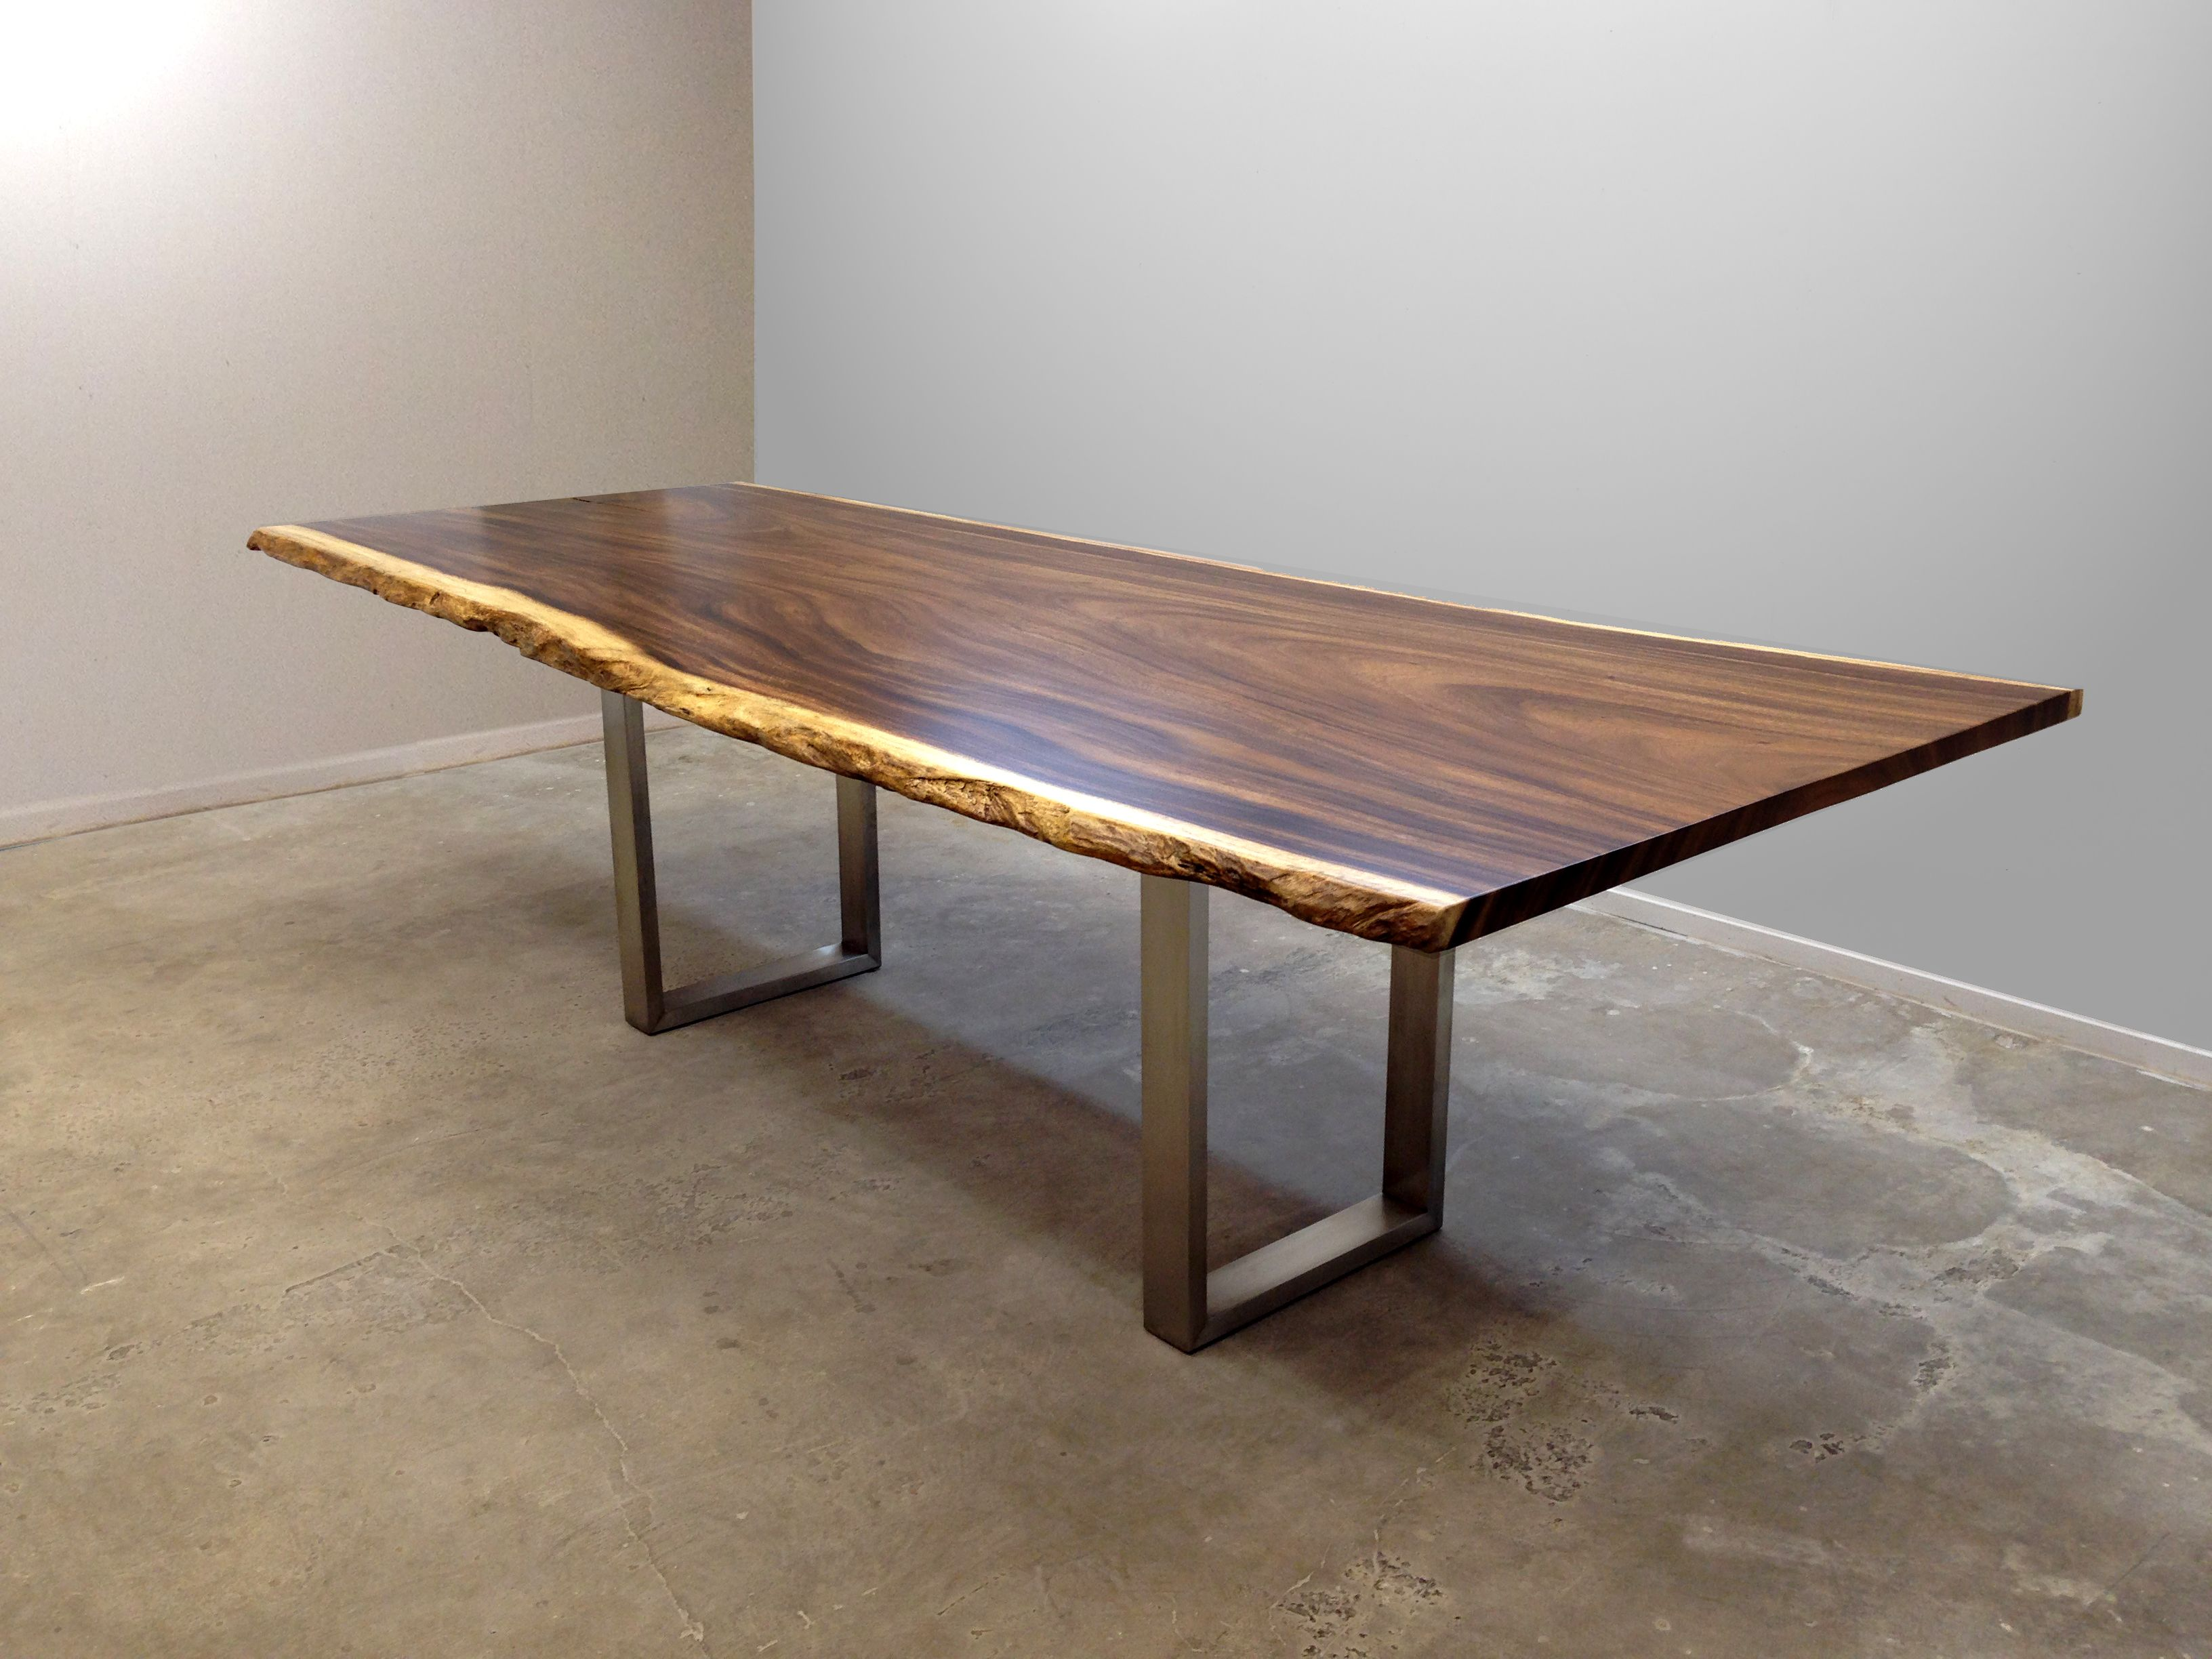 David Alan Collection Live edge slab dining table with custom